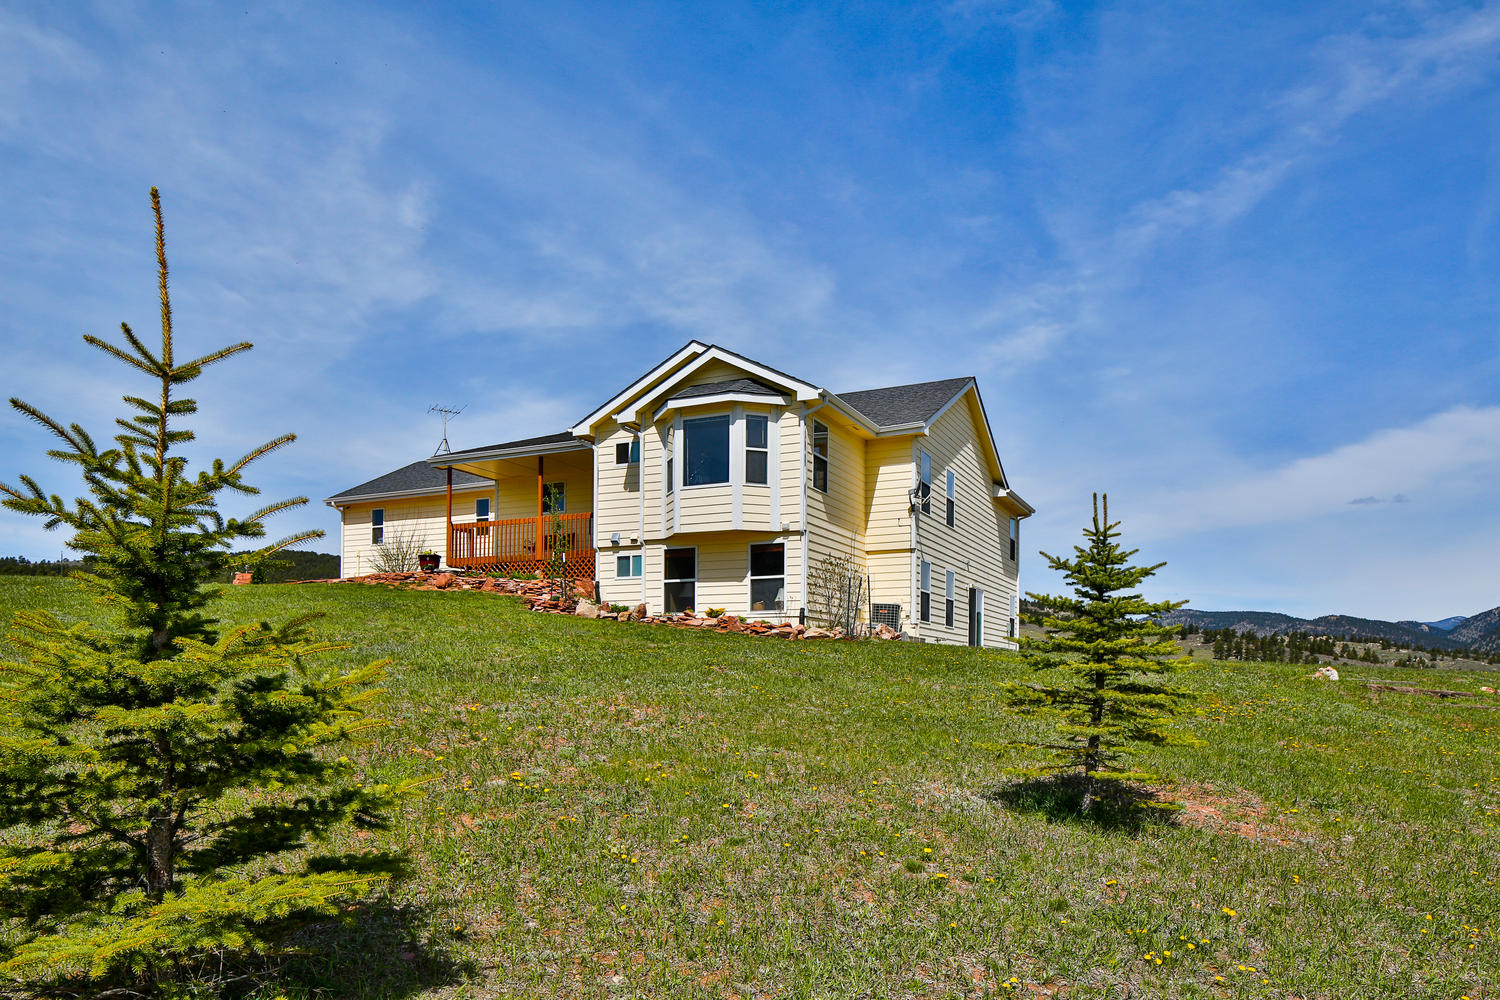 Single Family Home for Active at Lakefront Home on 36+ Acres 831 Cattle Drive Rd Loveland, Colorado 80537 United States